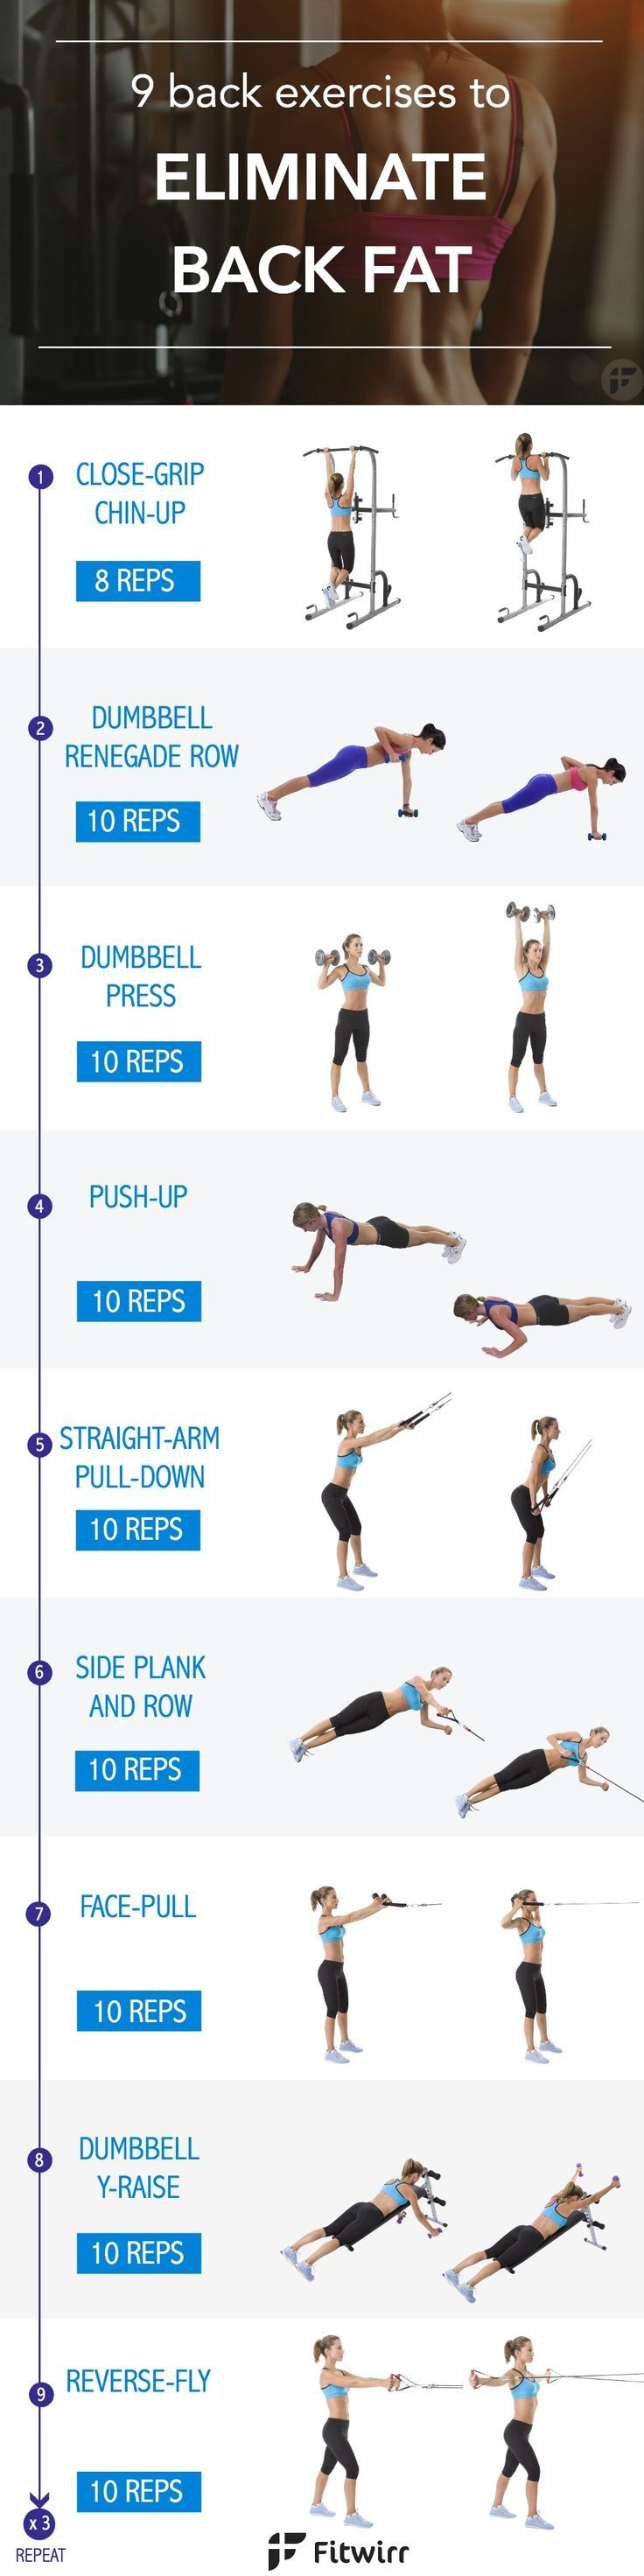 b5ca8fcbc56dd 9 back fat exercises to eliminate the bra bulge. It s time to say good bye  to those annoying back fat. Tone your back with these 9 exercises